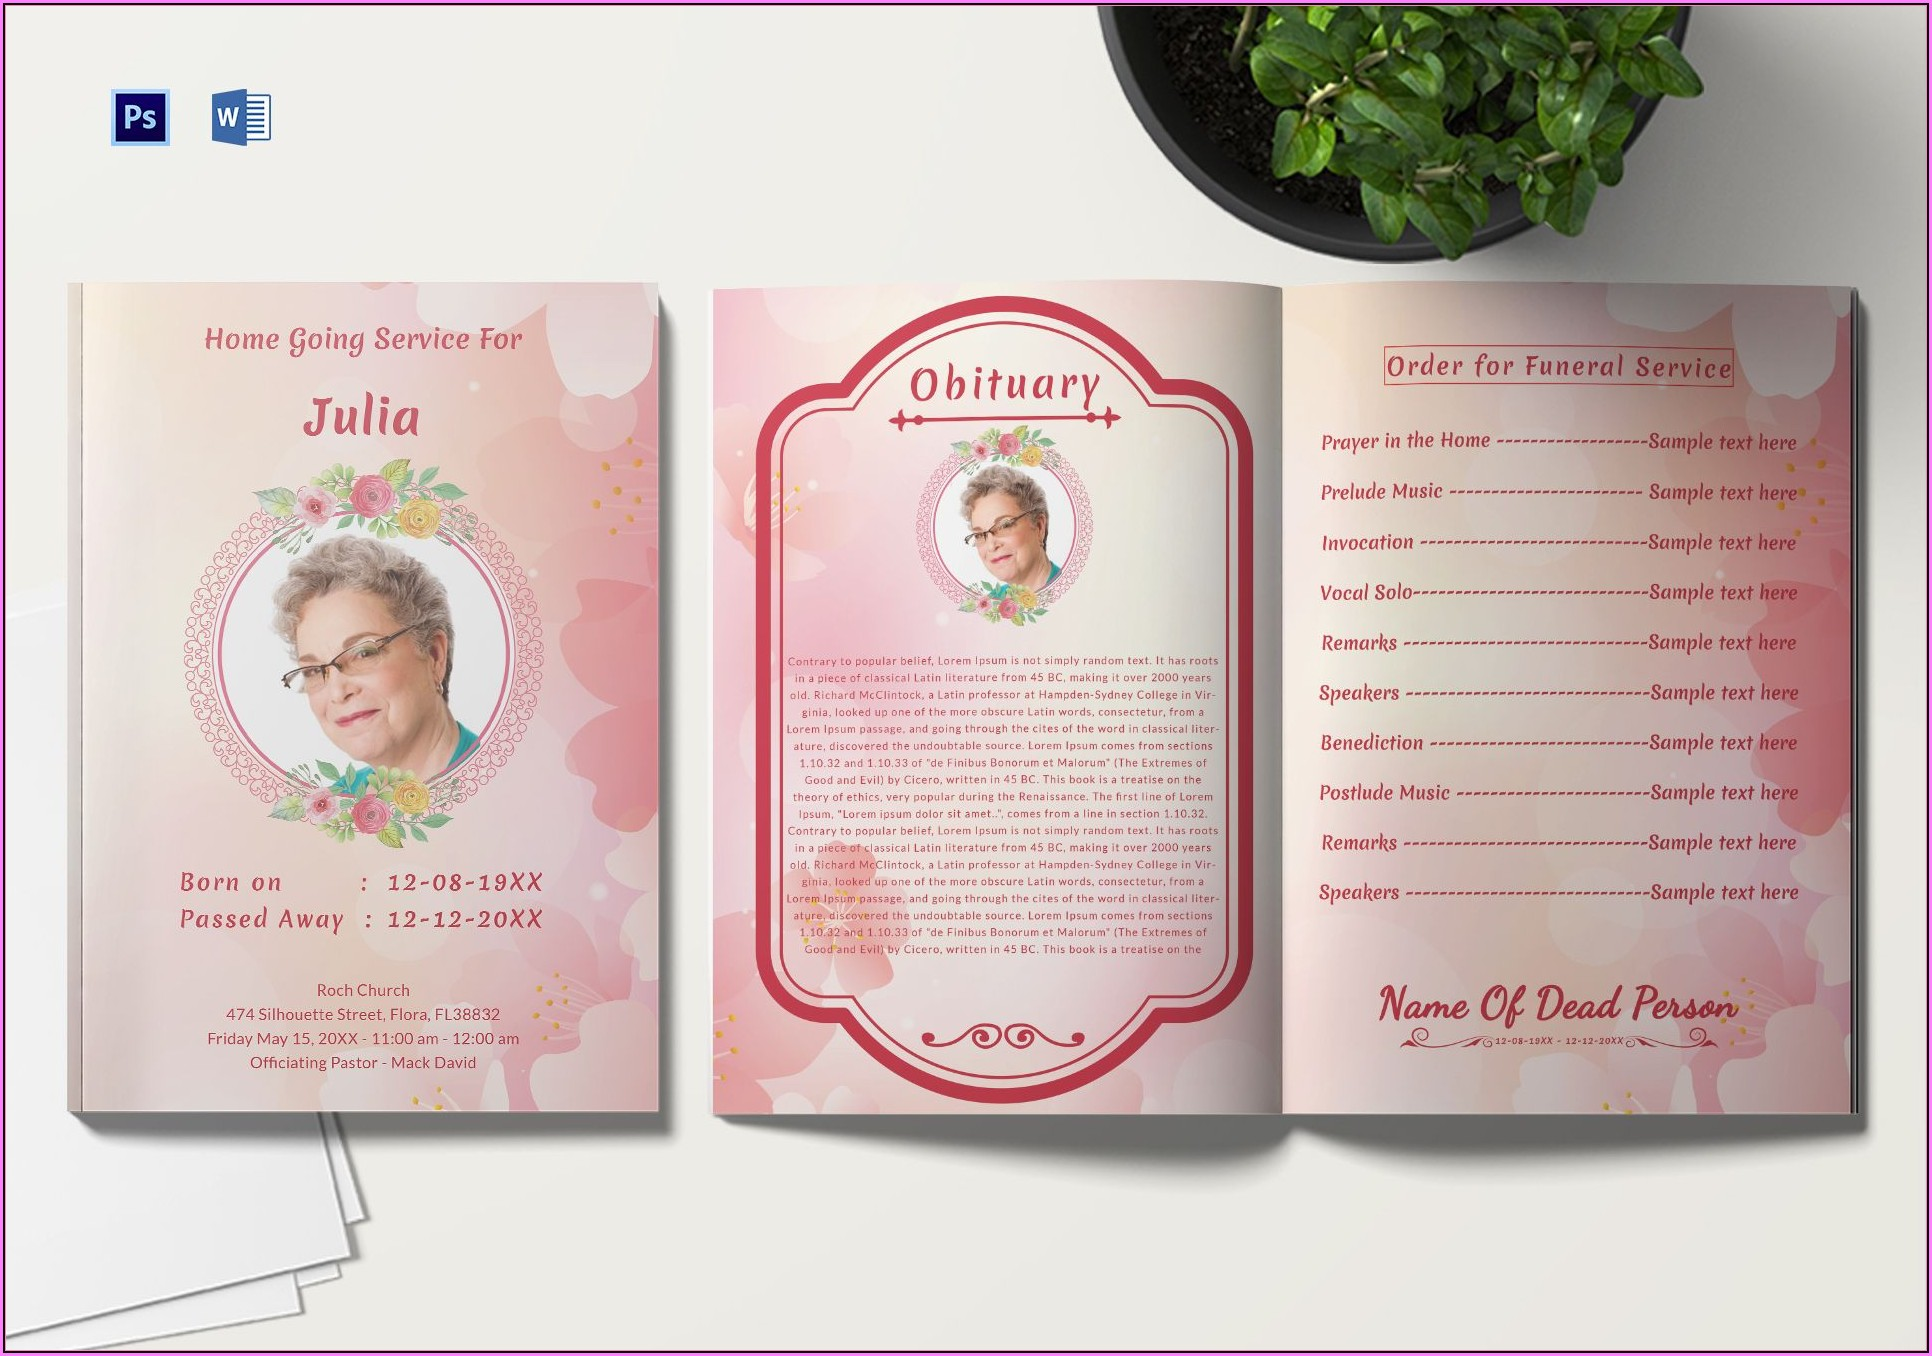 Funeral Service Template Microsoft Word